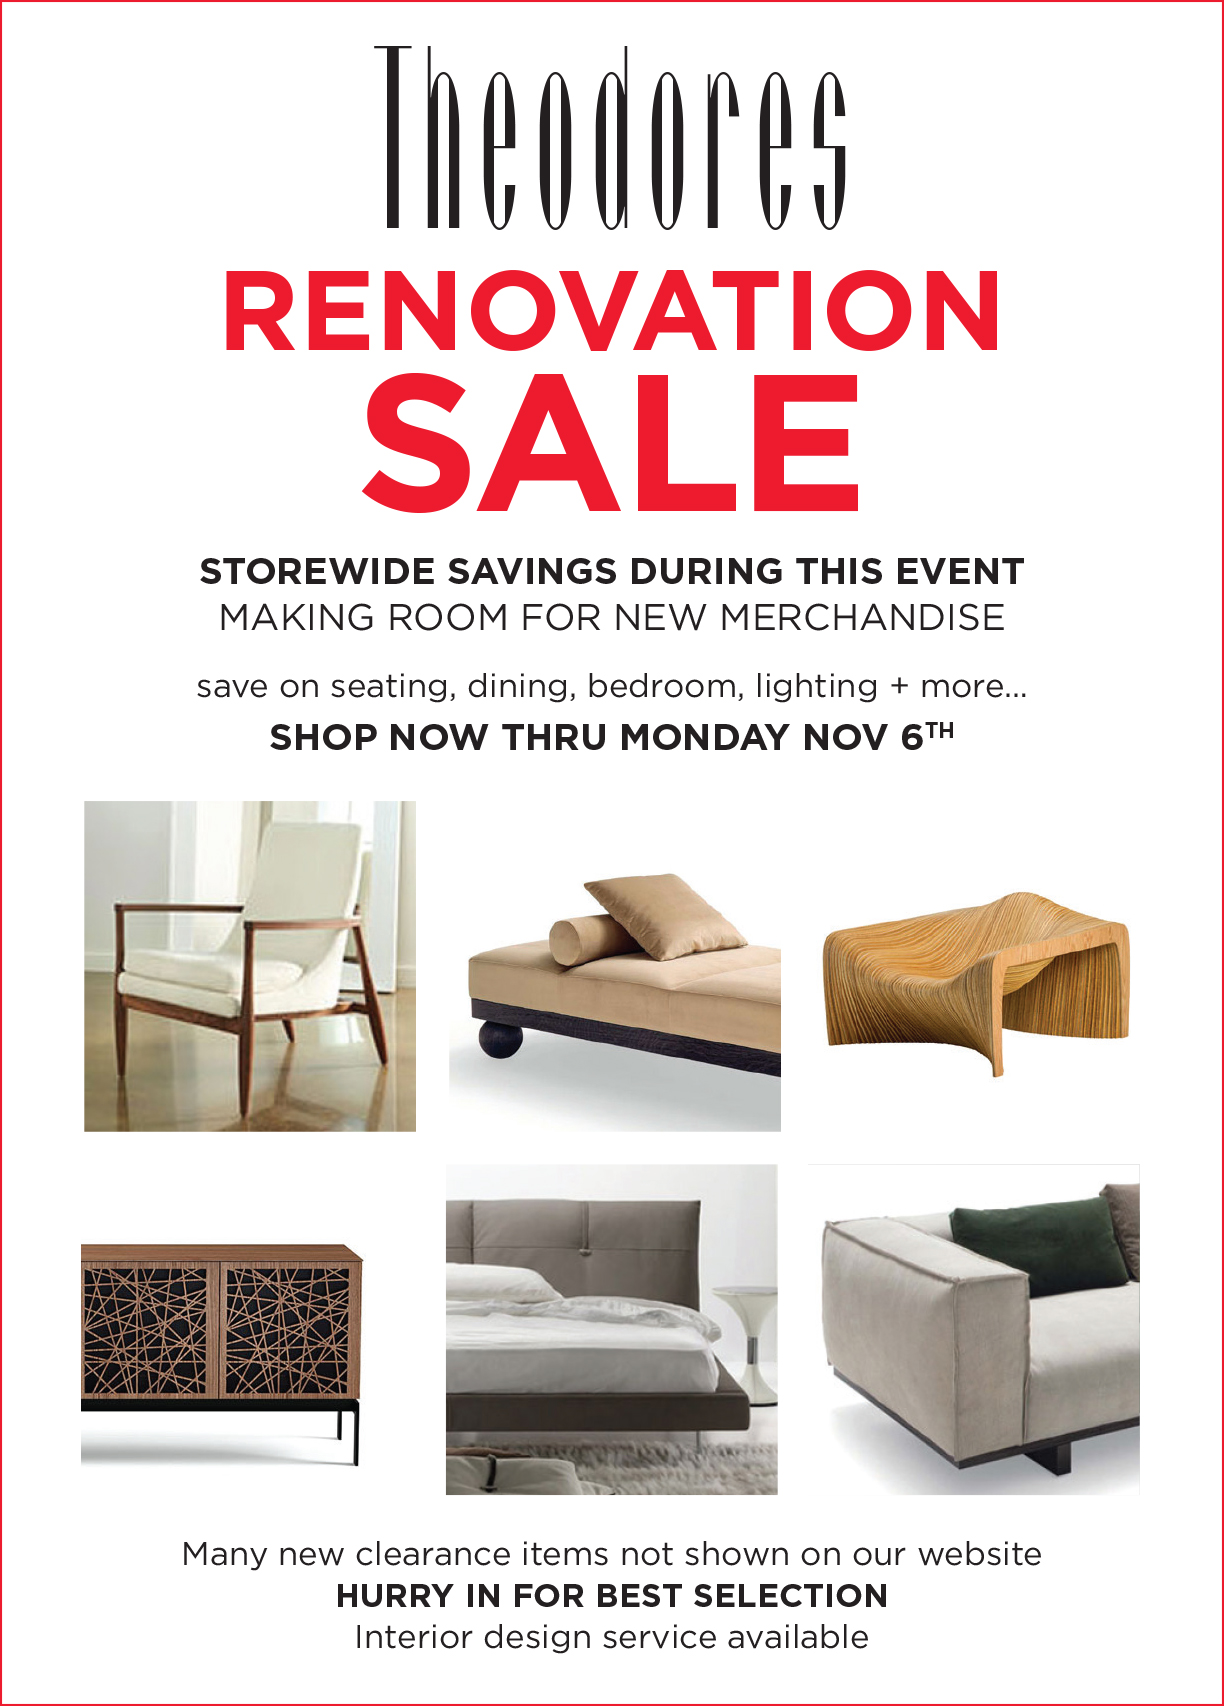 leather sofa washington dc patchwork throws uk renovation sale in progress save storewide now | theodores